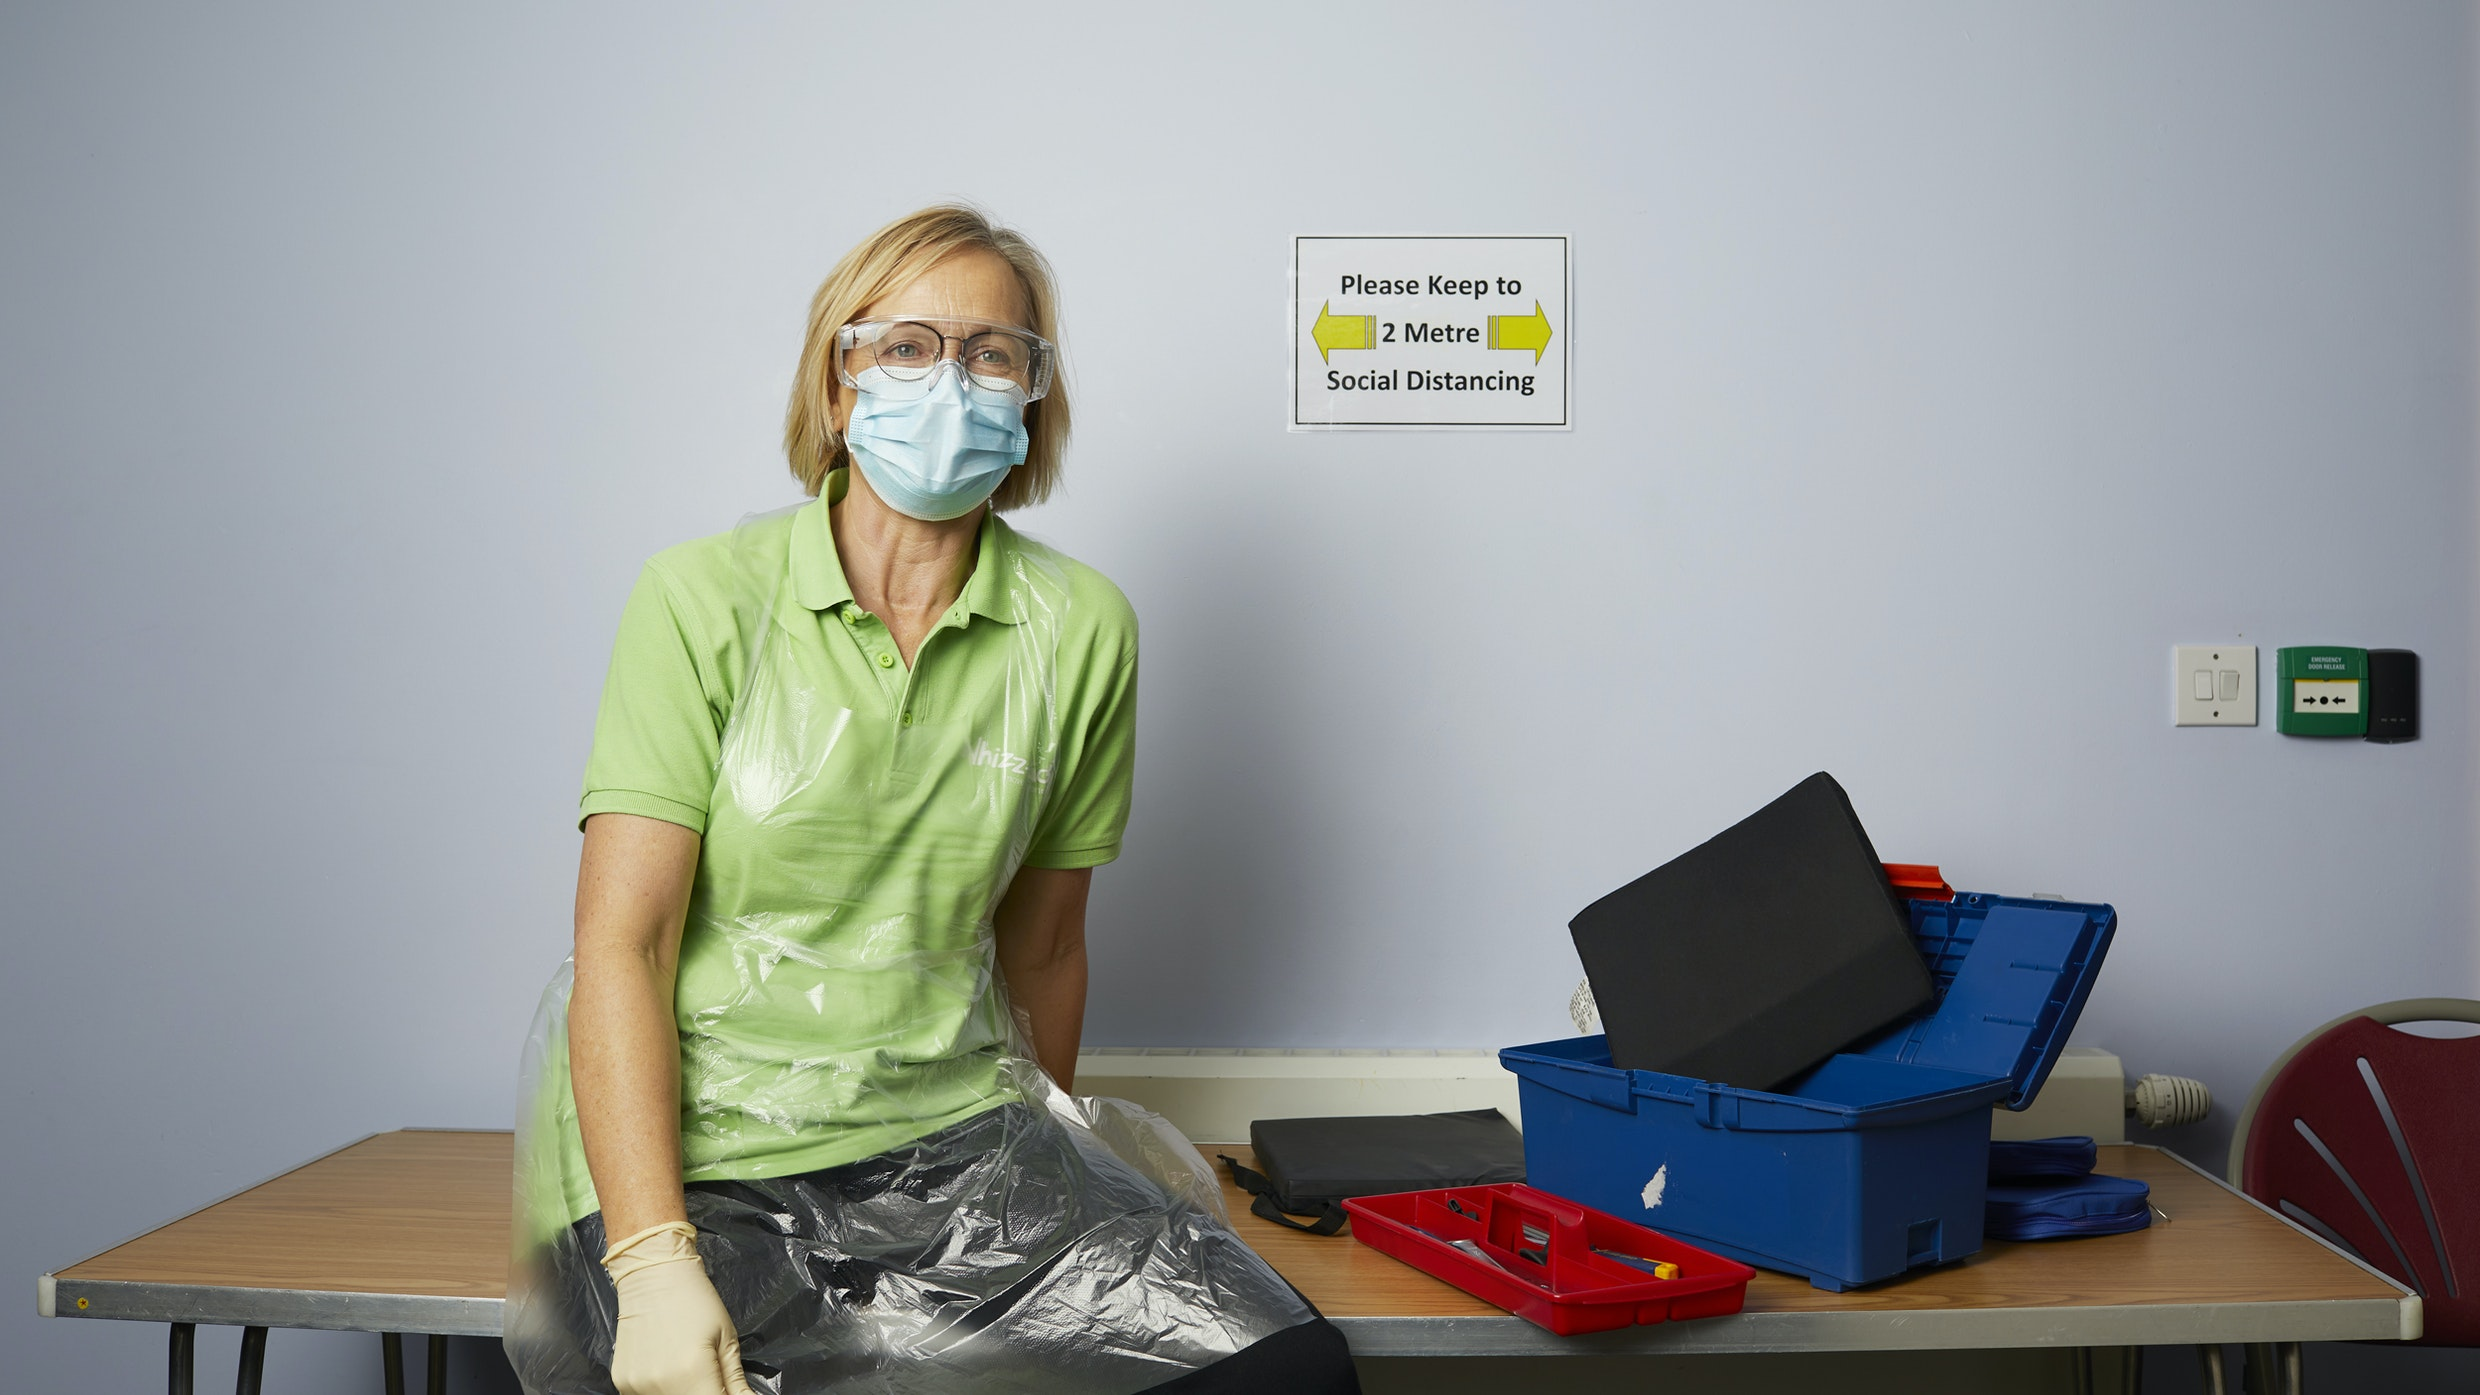 A Whizz-Kidz worker poses in PPE